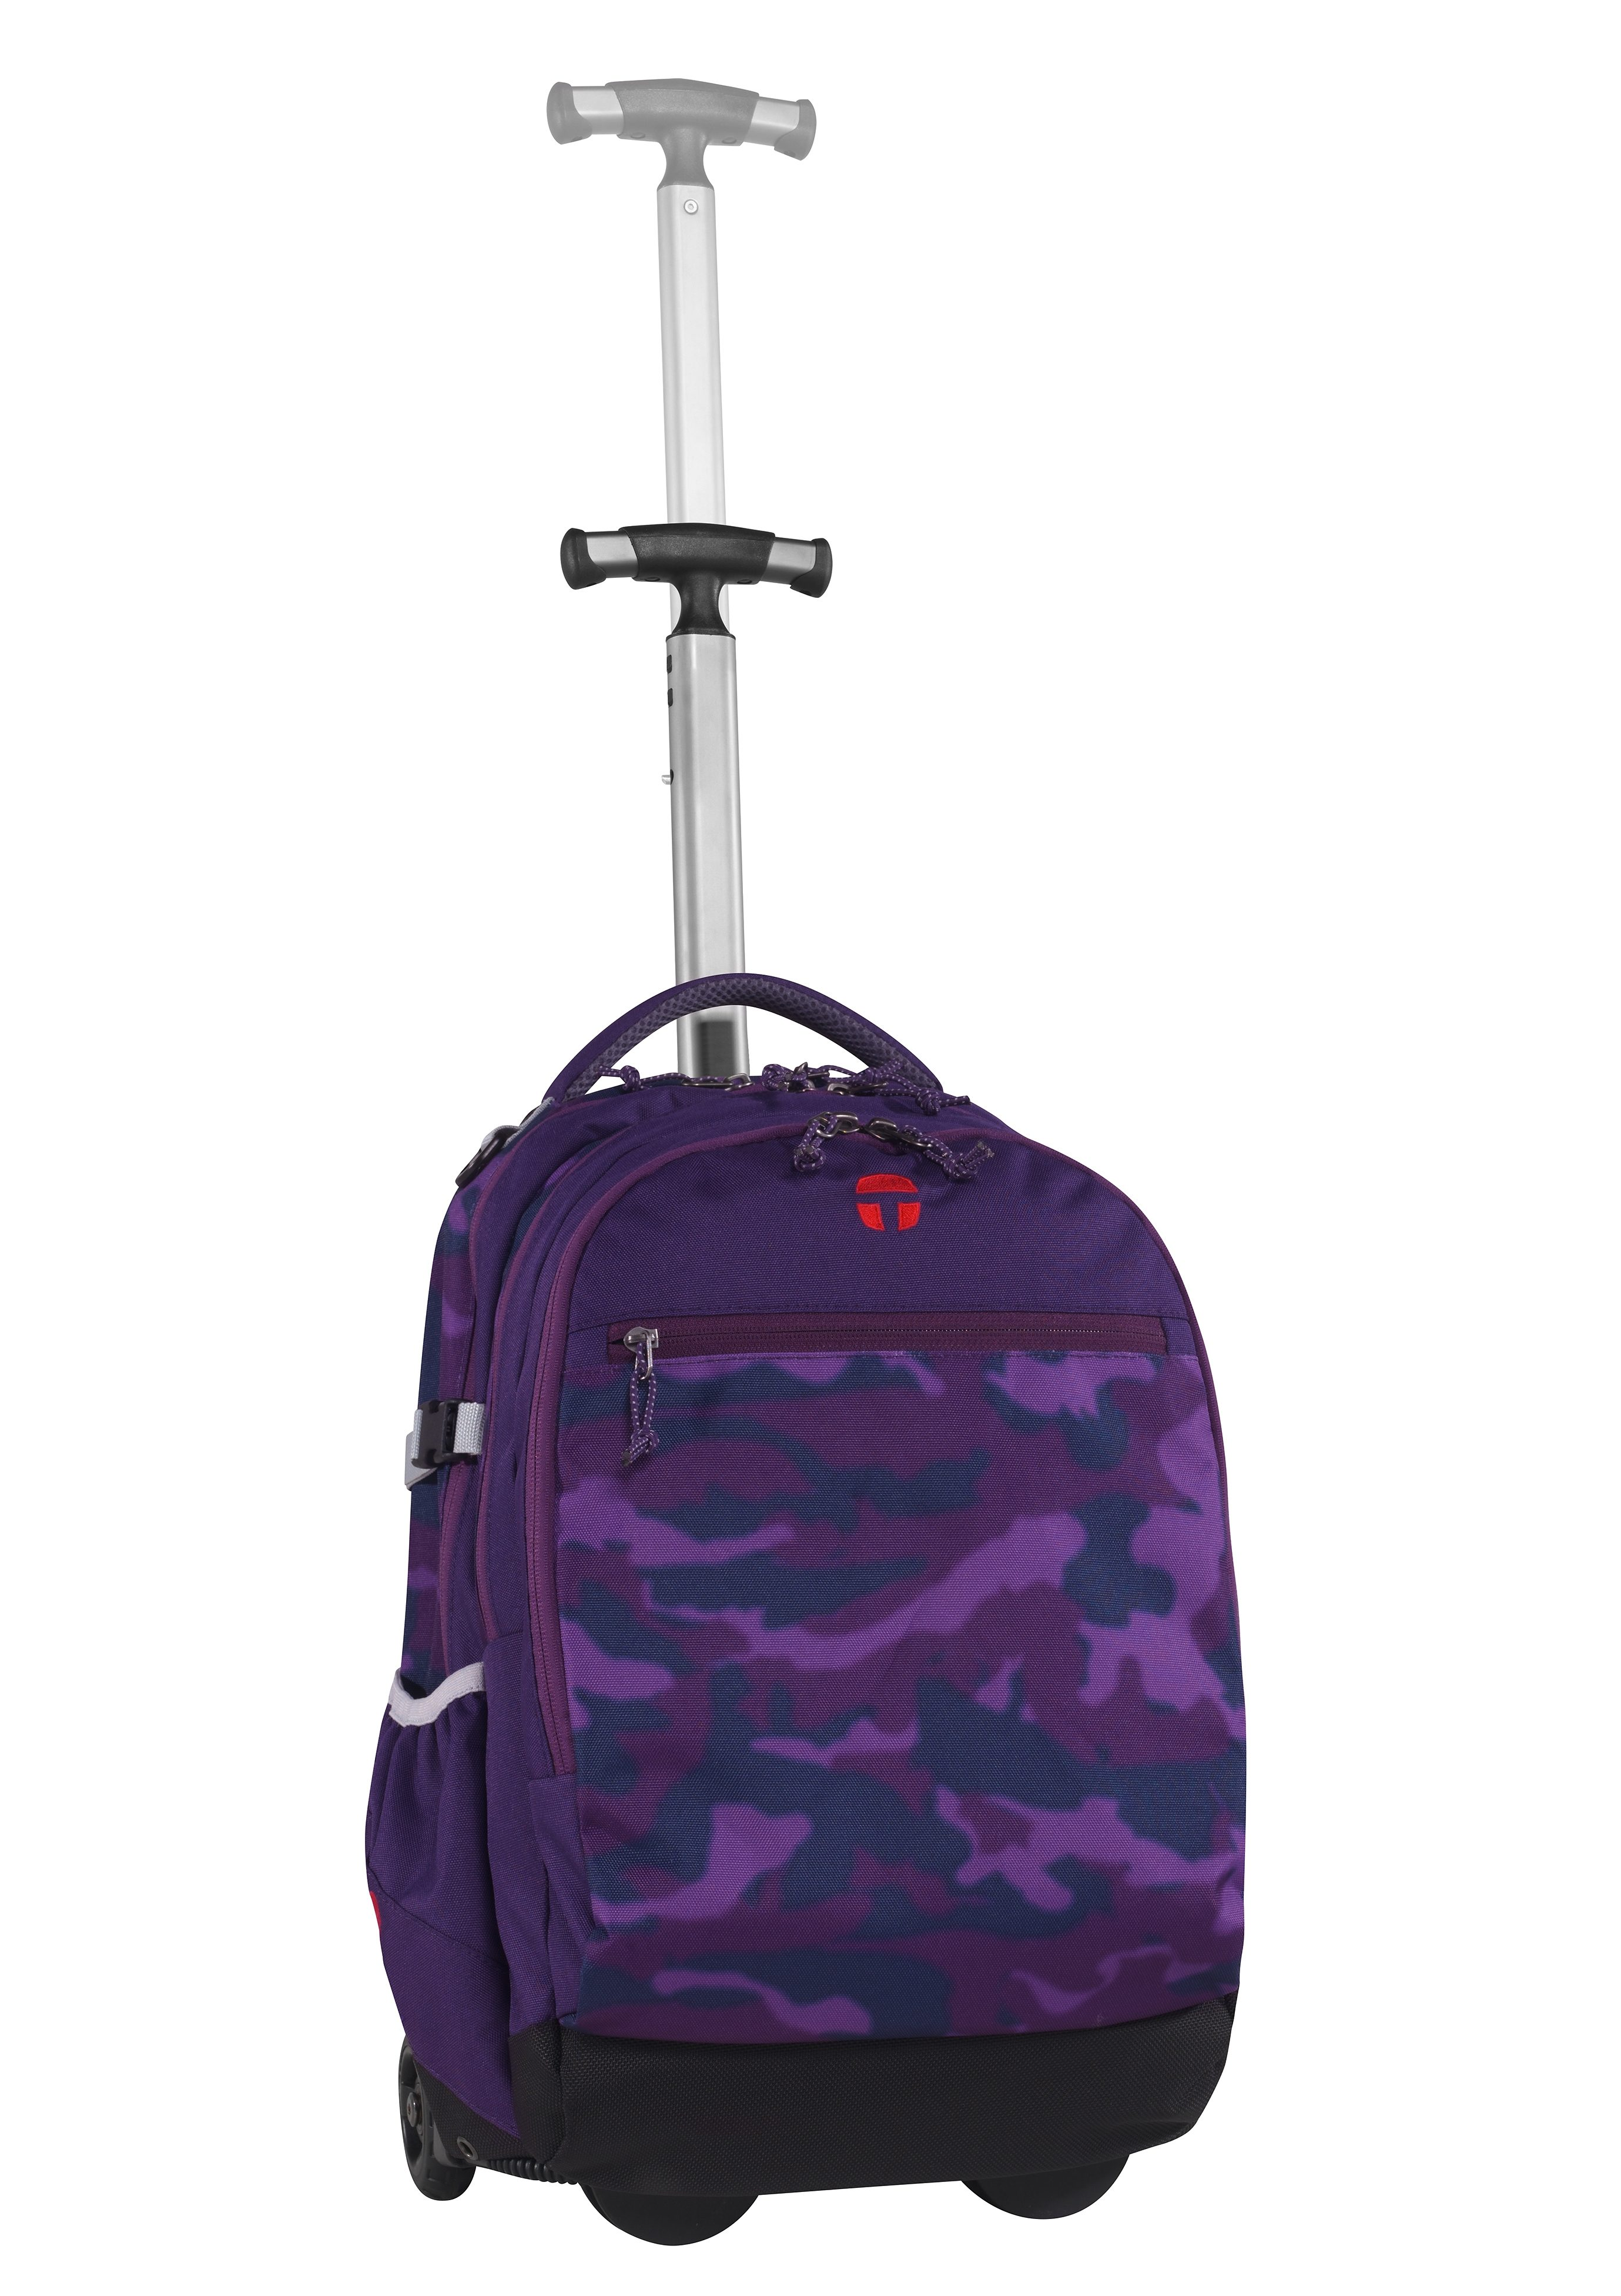 TAKE IT EASY® Rucksack mit Teleskoparm, »Barcelona Camouflage Purple«